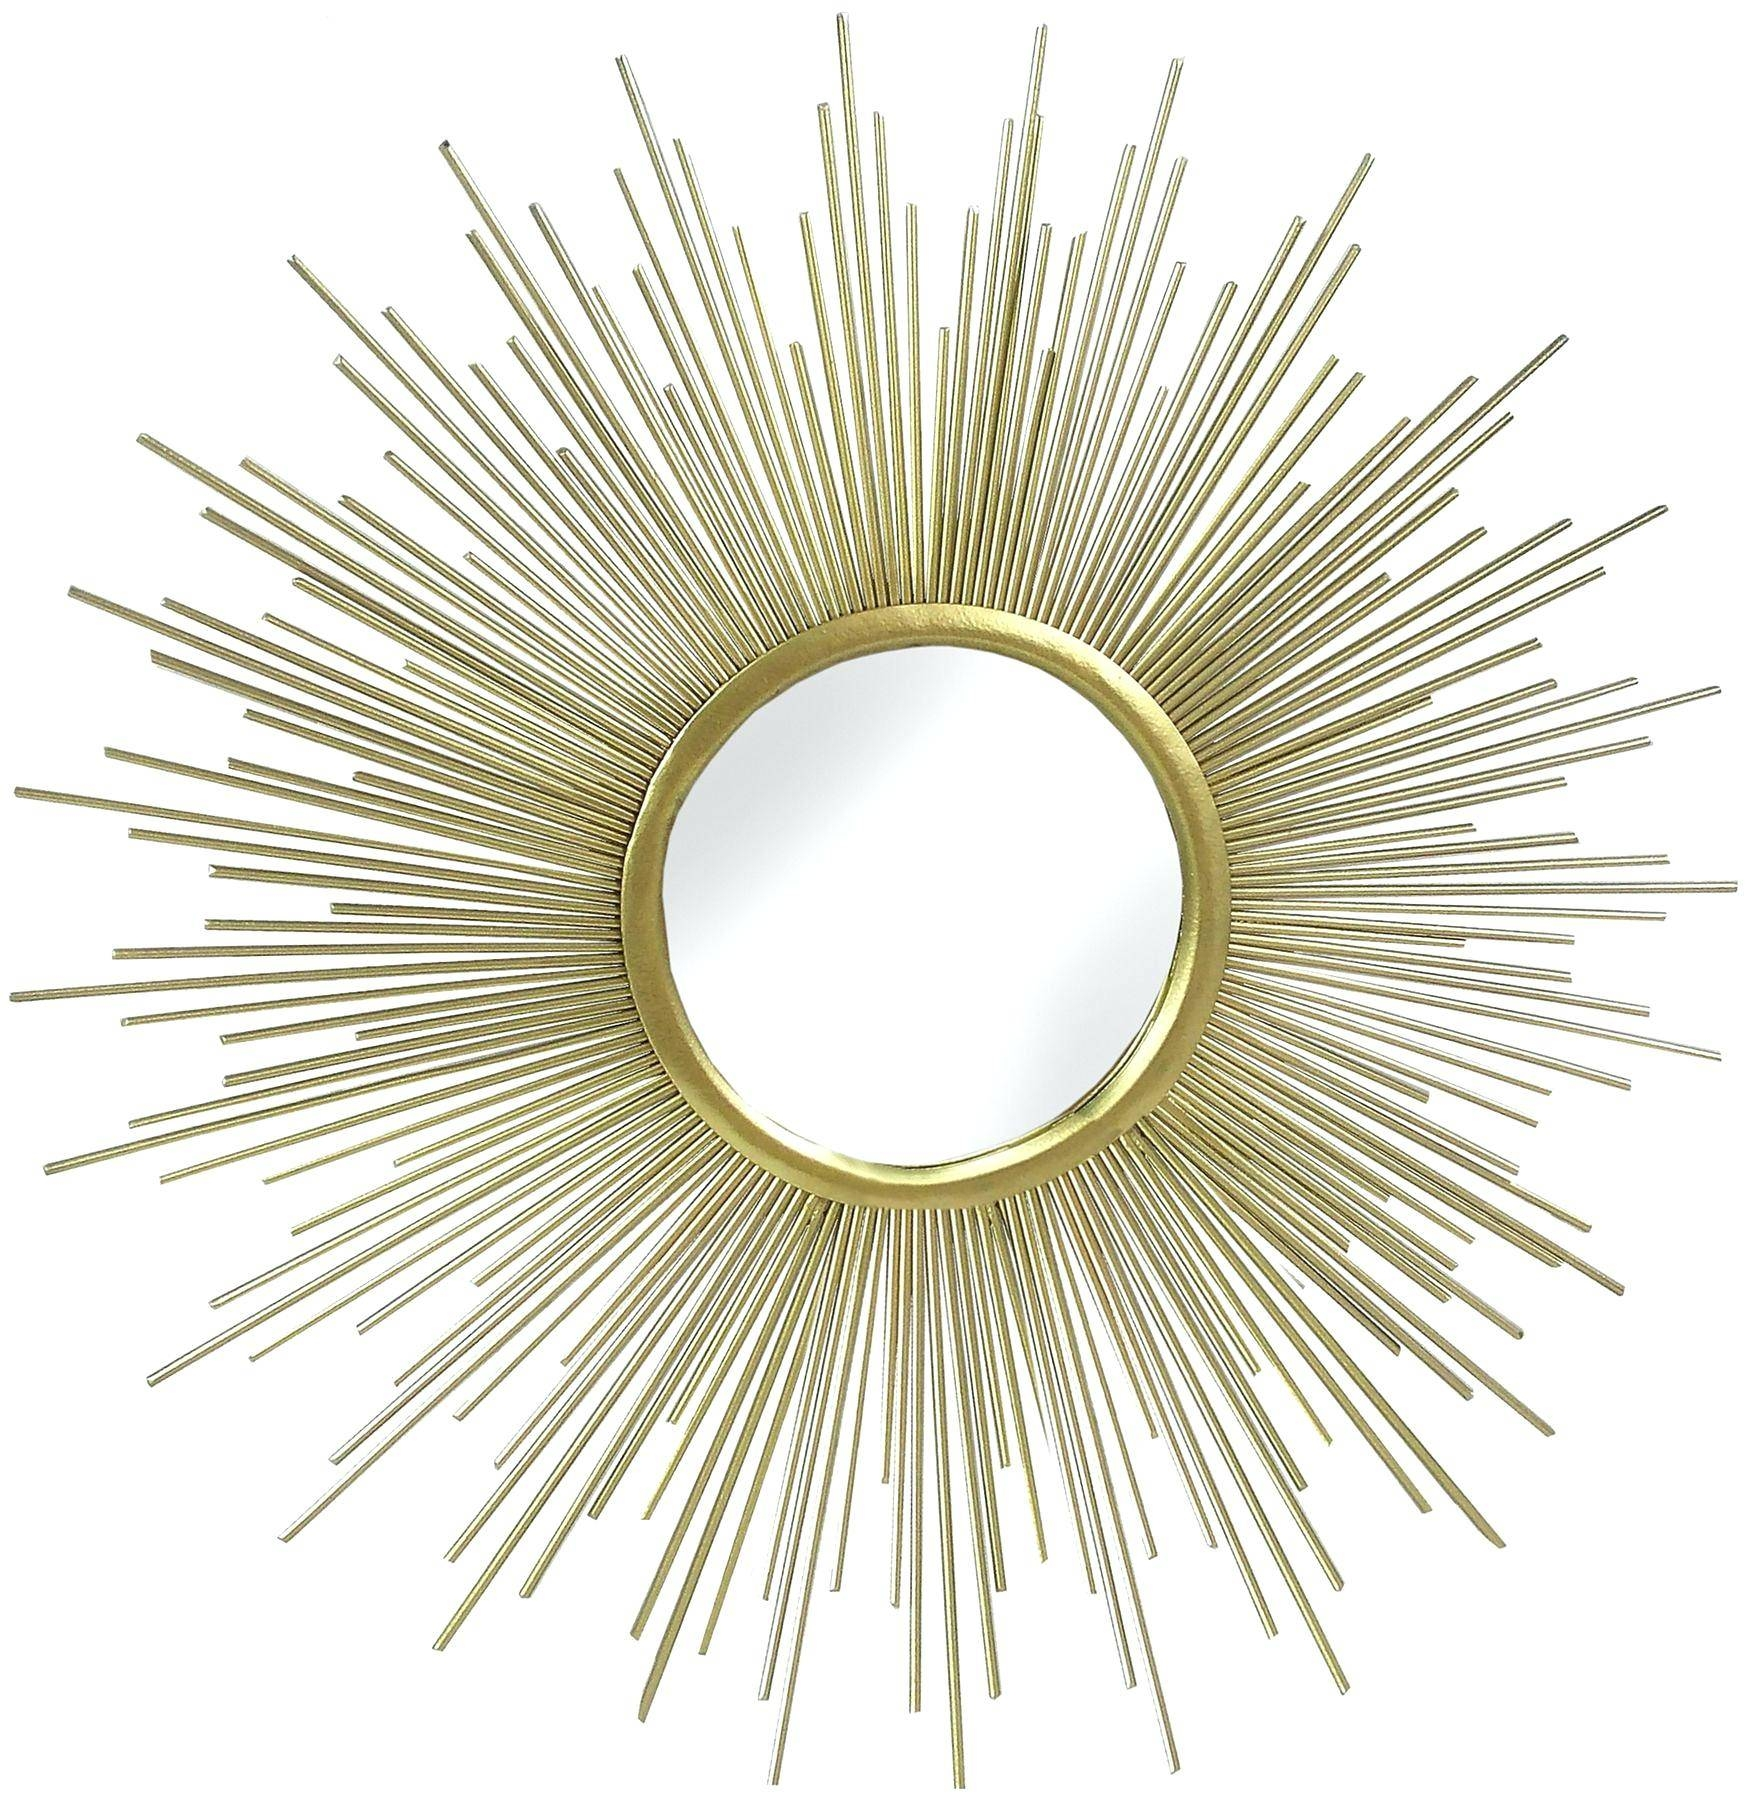 Metal Wall Decor With Mirrors Mirror The Home Design Make Your For 2018 Metal Wall Art With Mirrors (View 16 of 20)